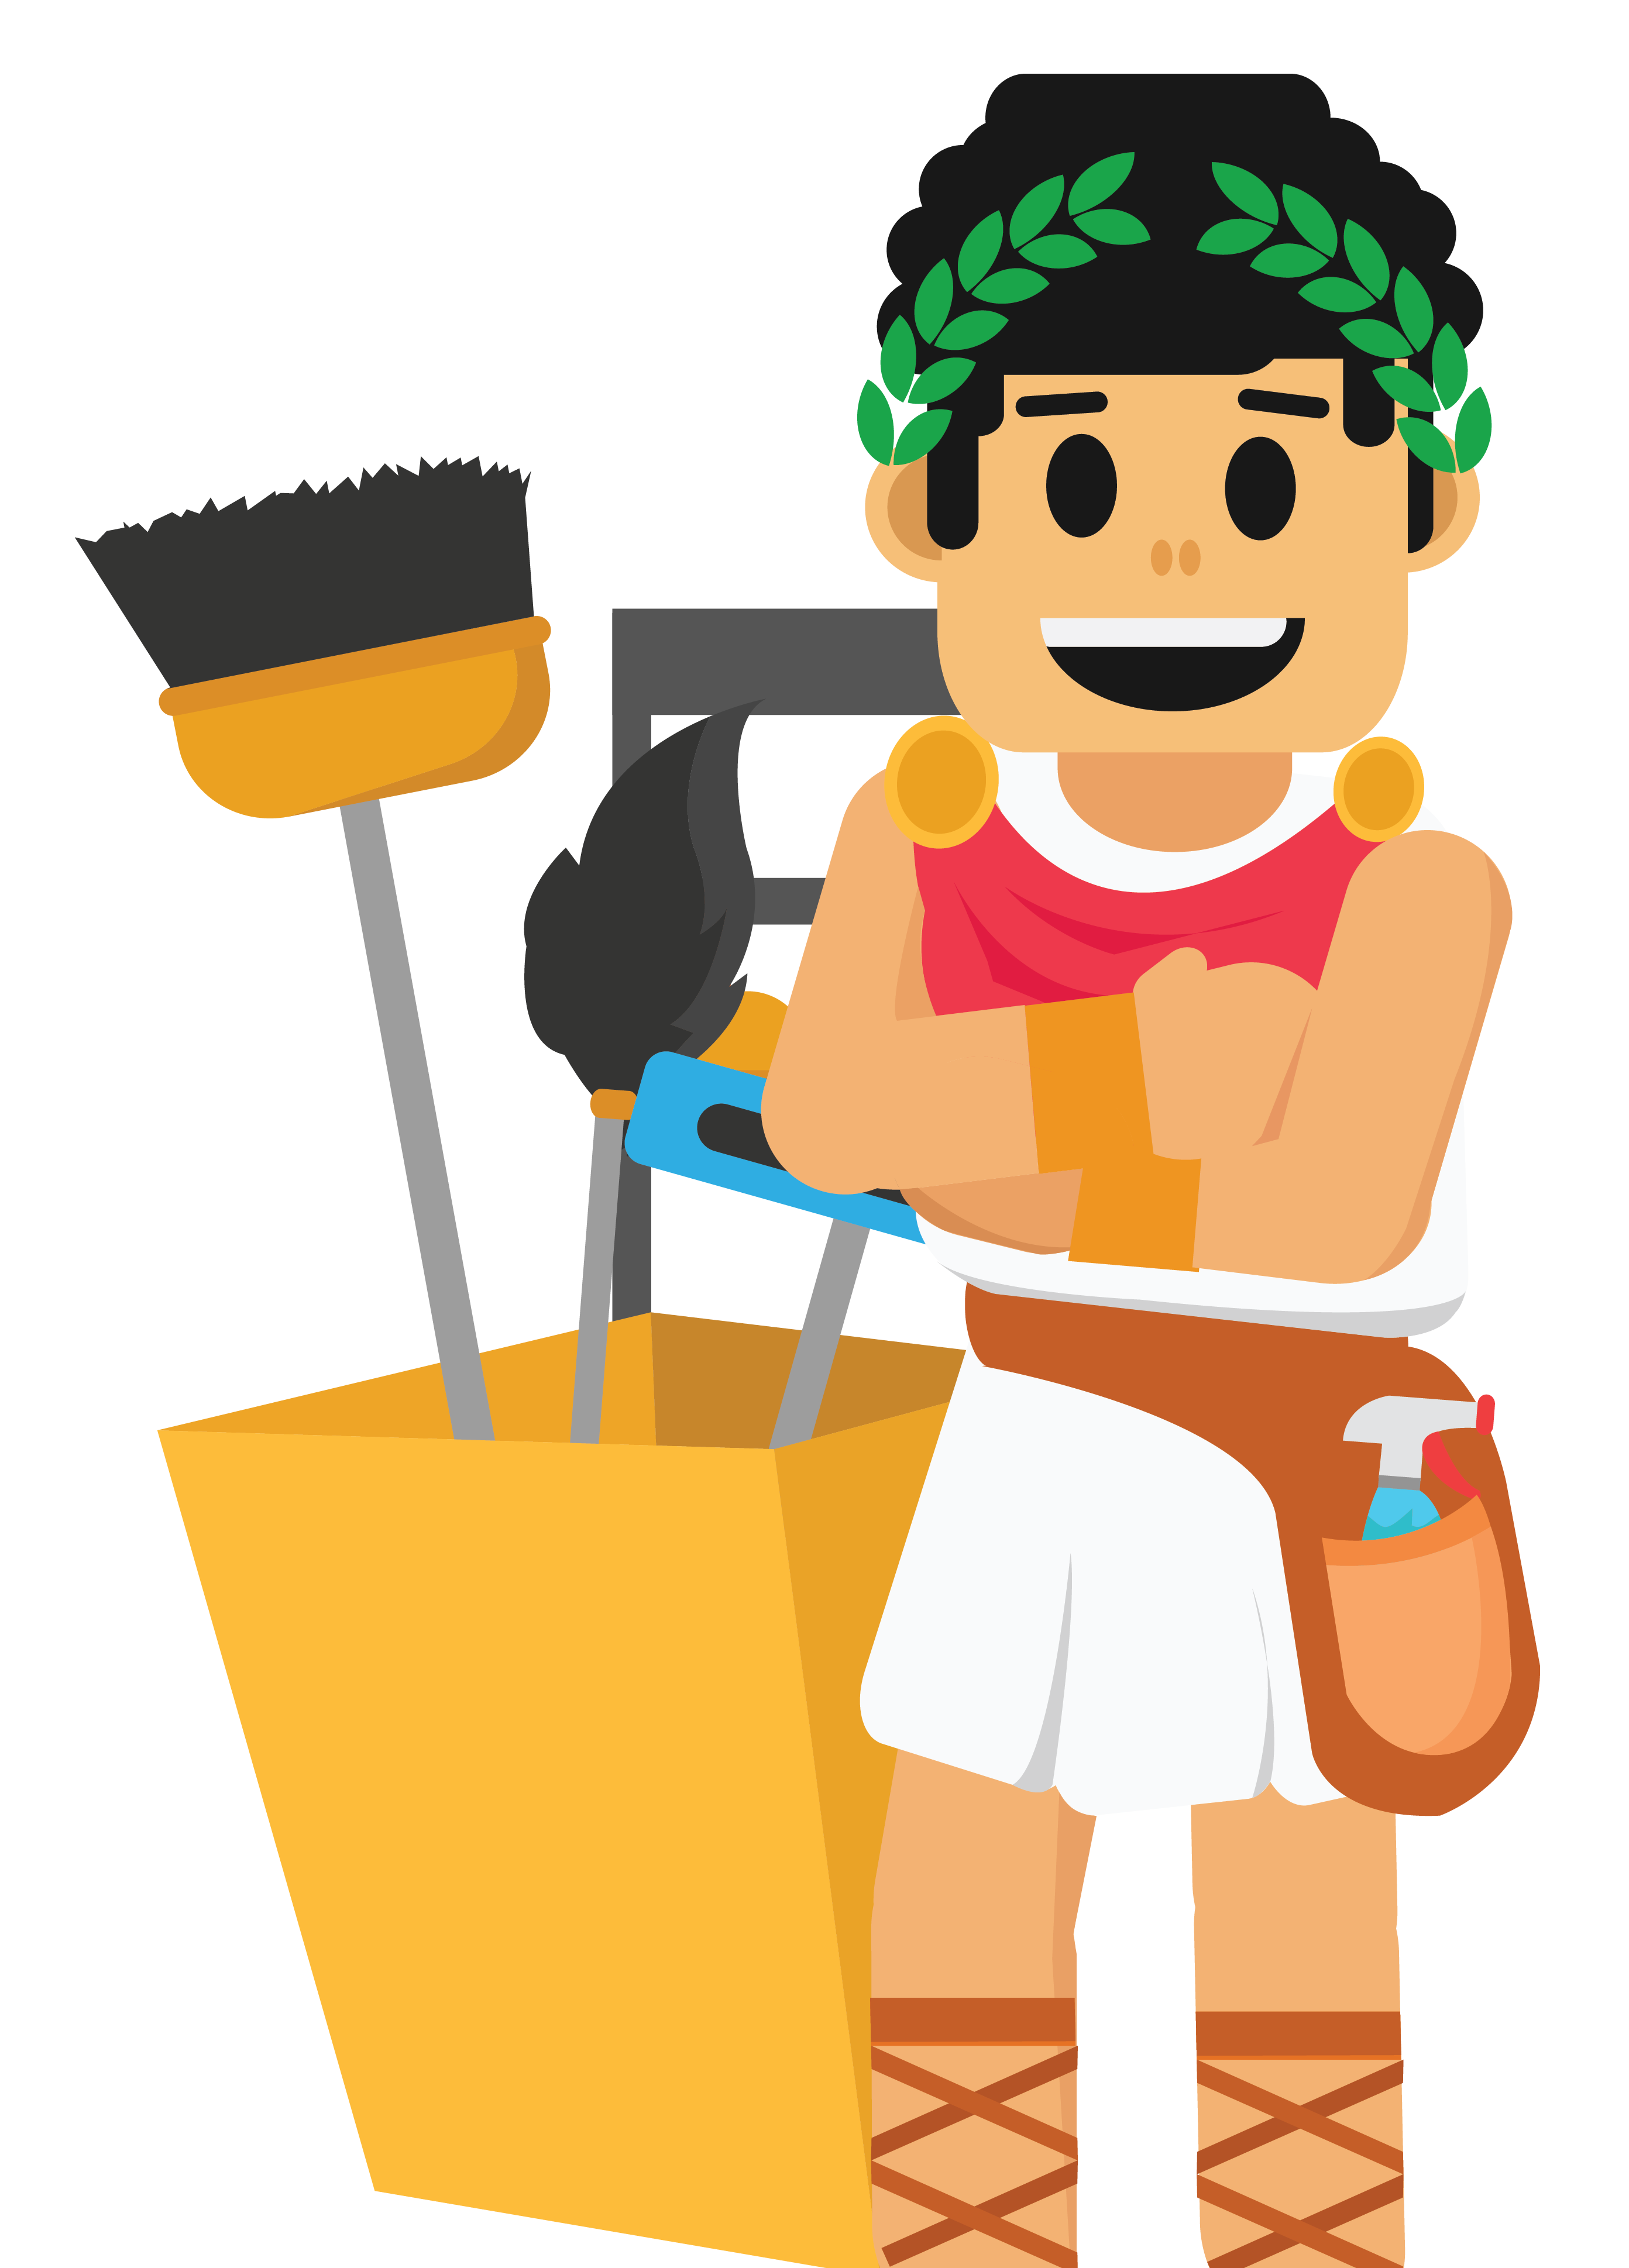 Empire-cleaning-specialists-mascot